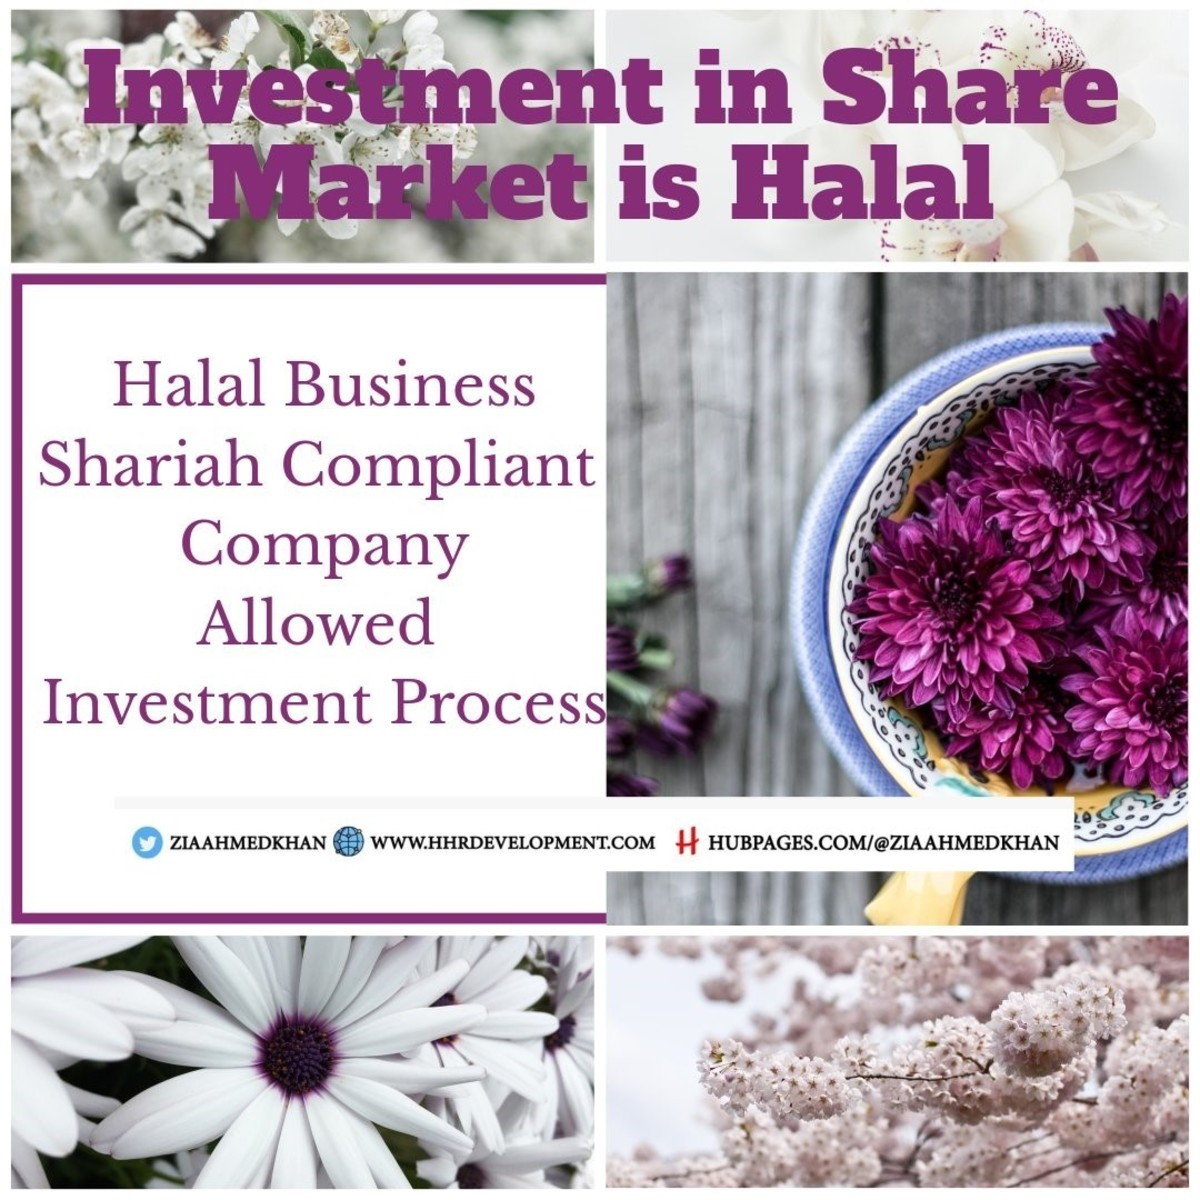 Share Market Investment is Halal